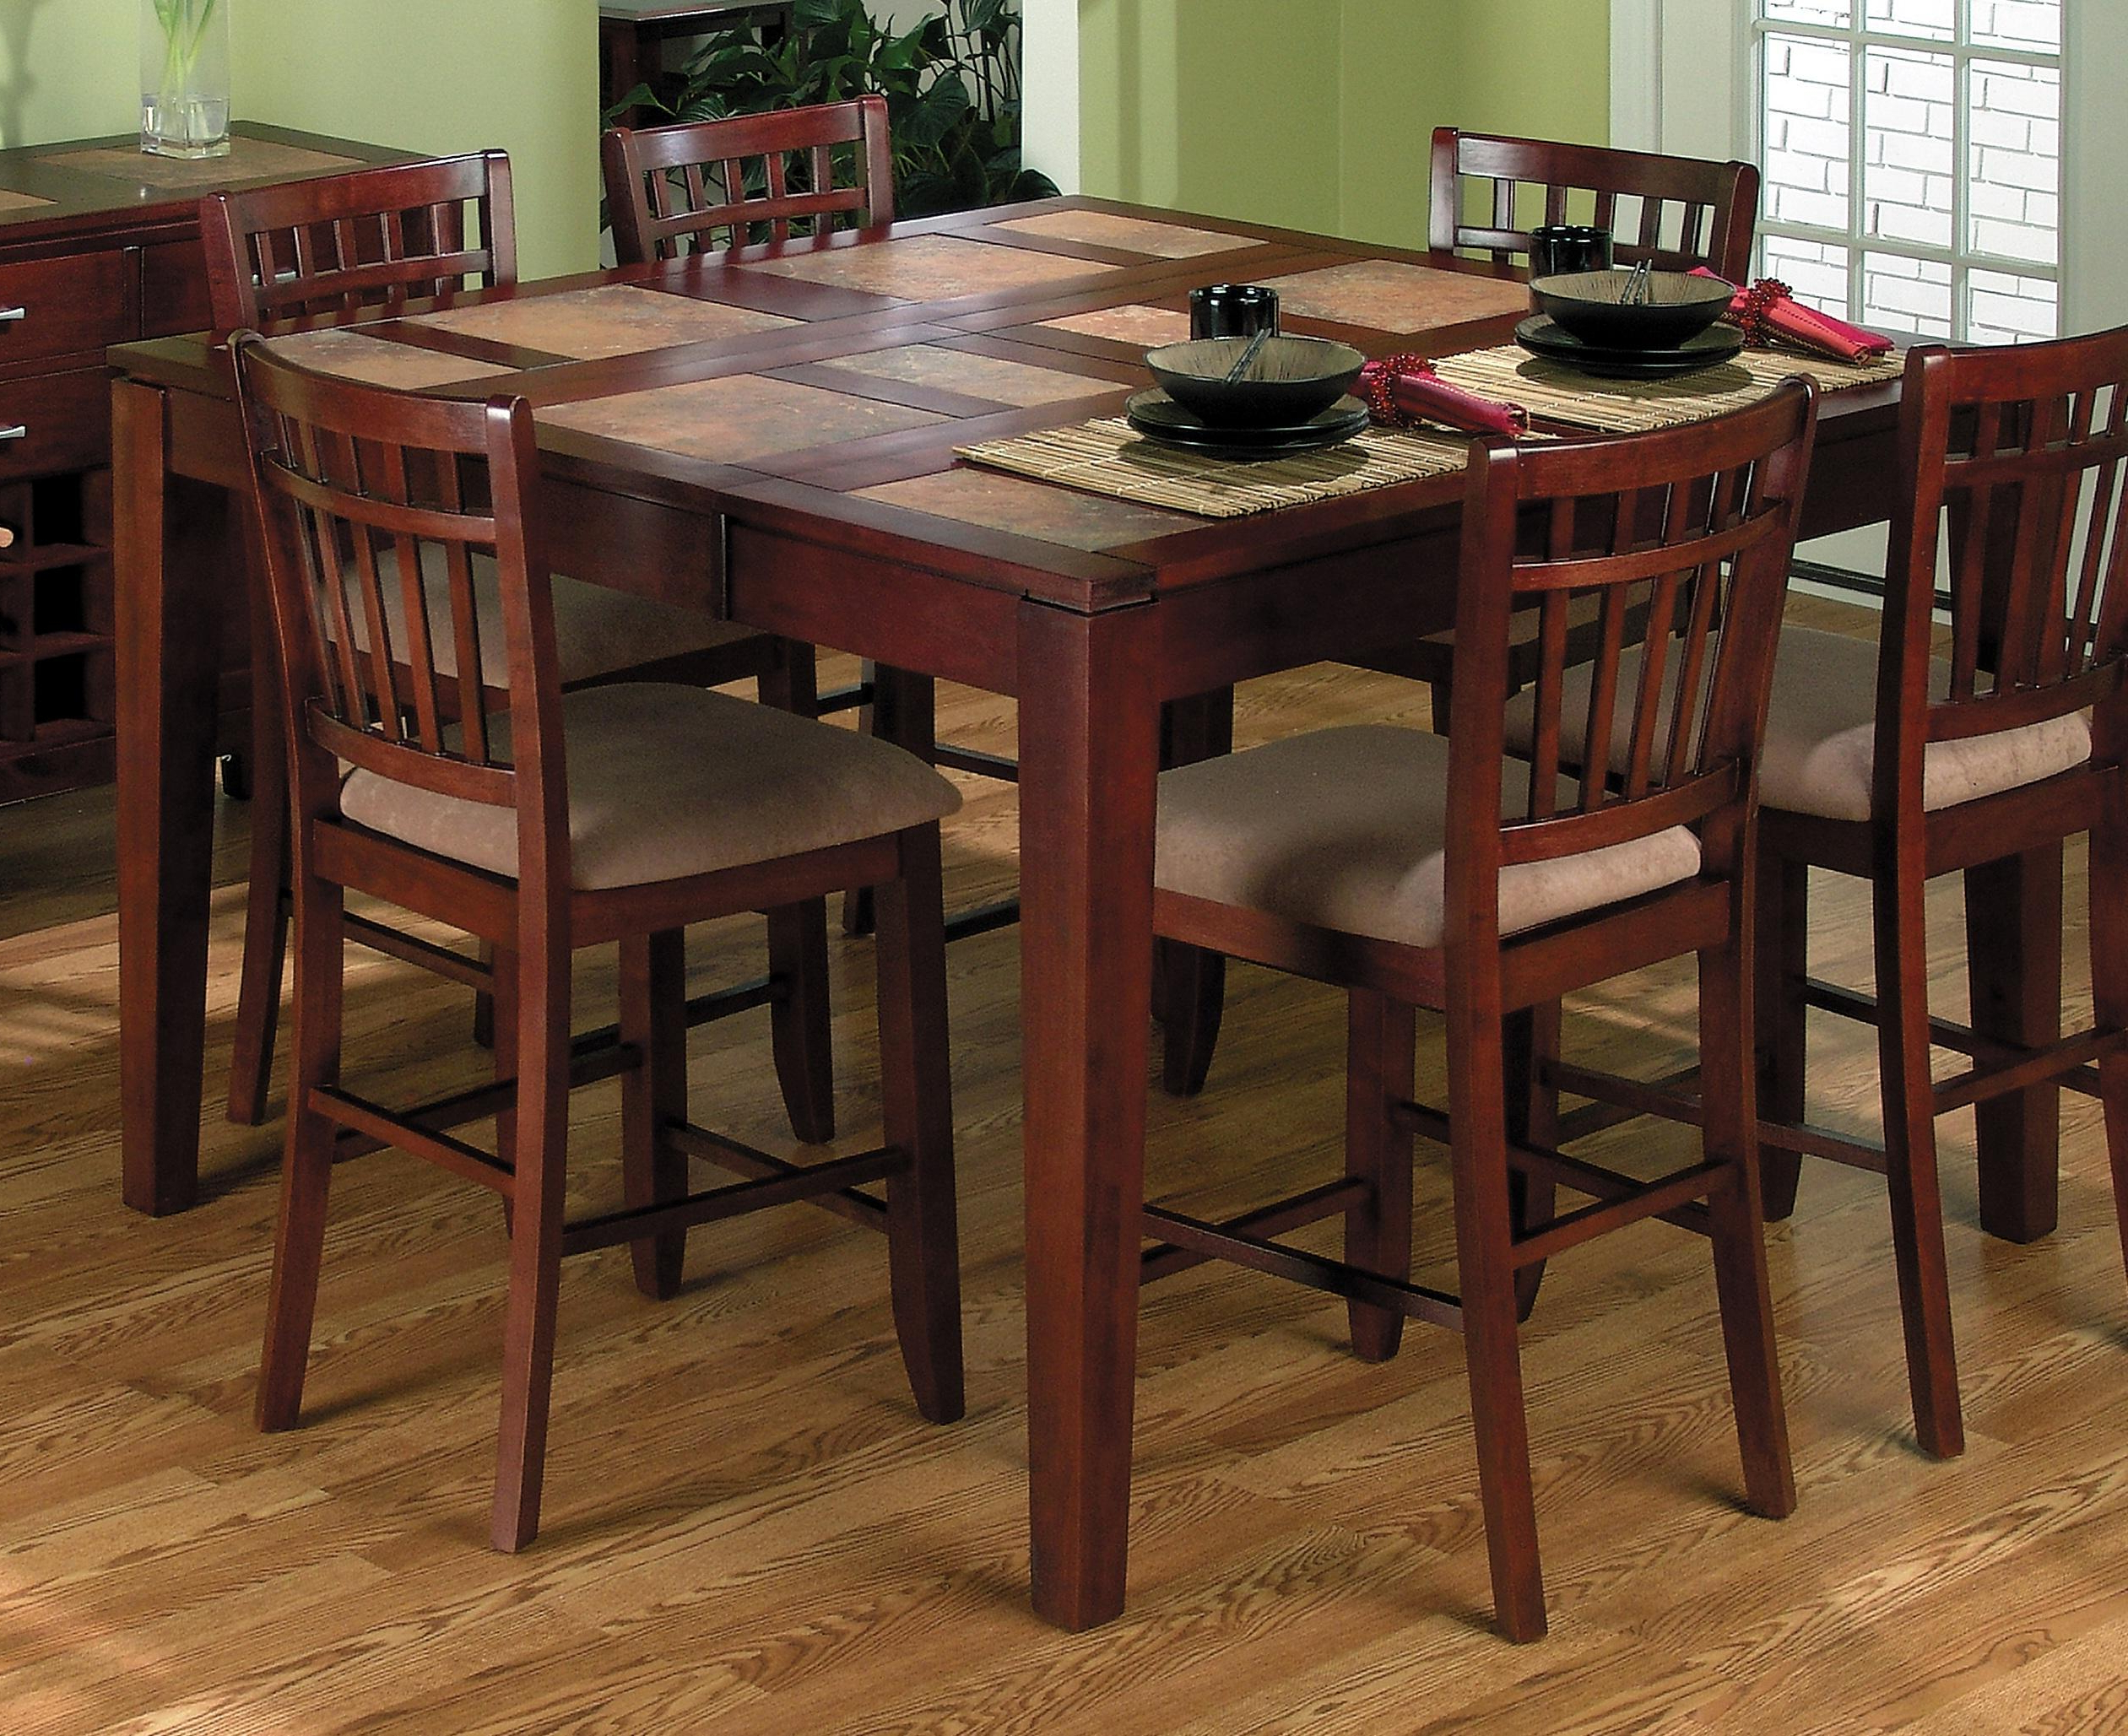 Homesfeed Within Famous Contemporary 6 Seating Rectangular Dining Tables (View 14 of 30)